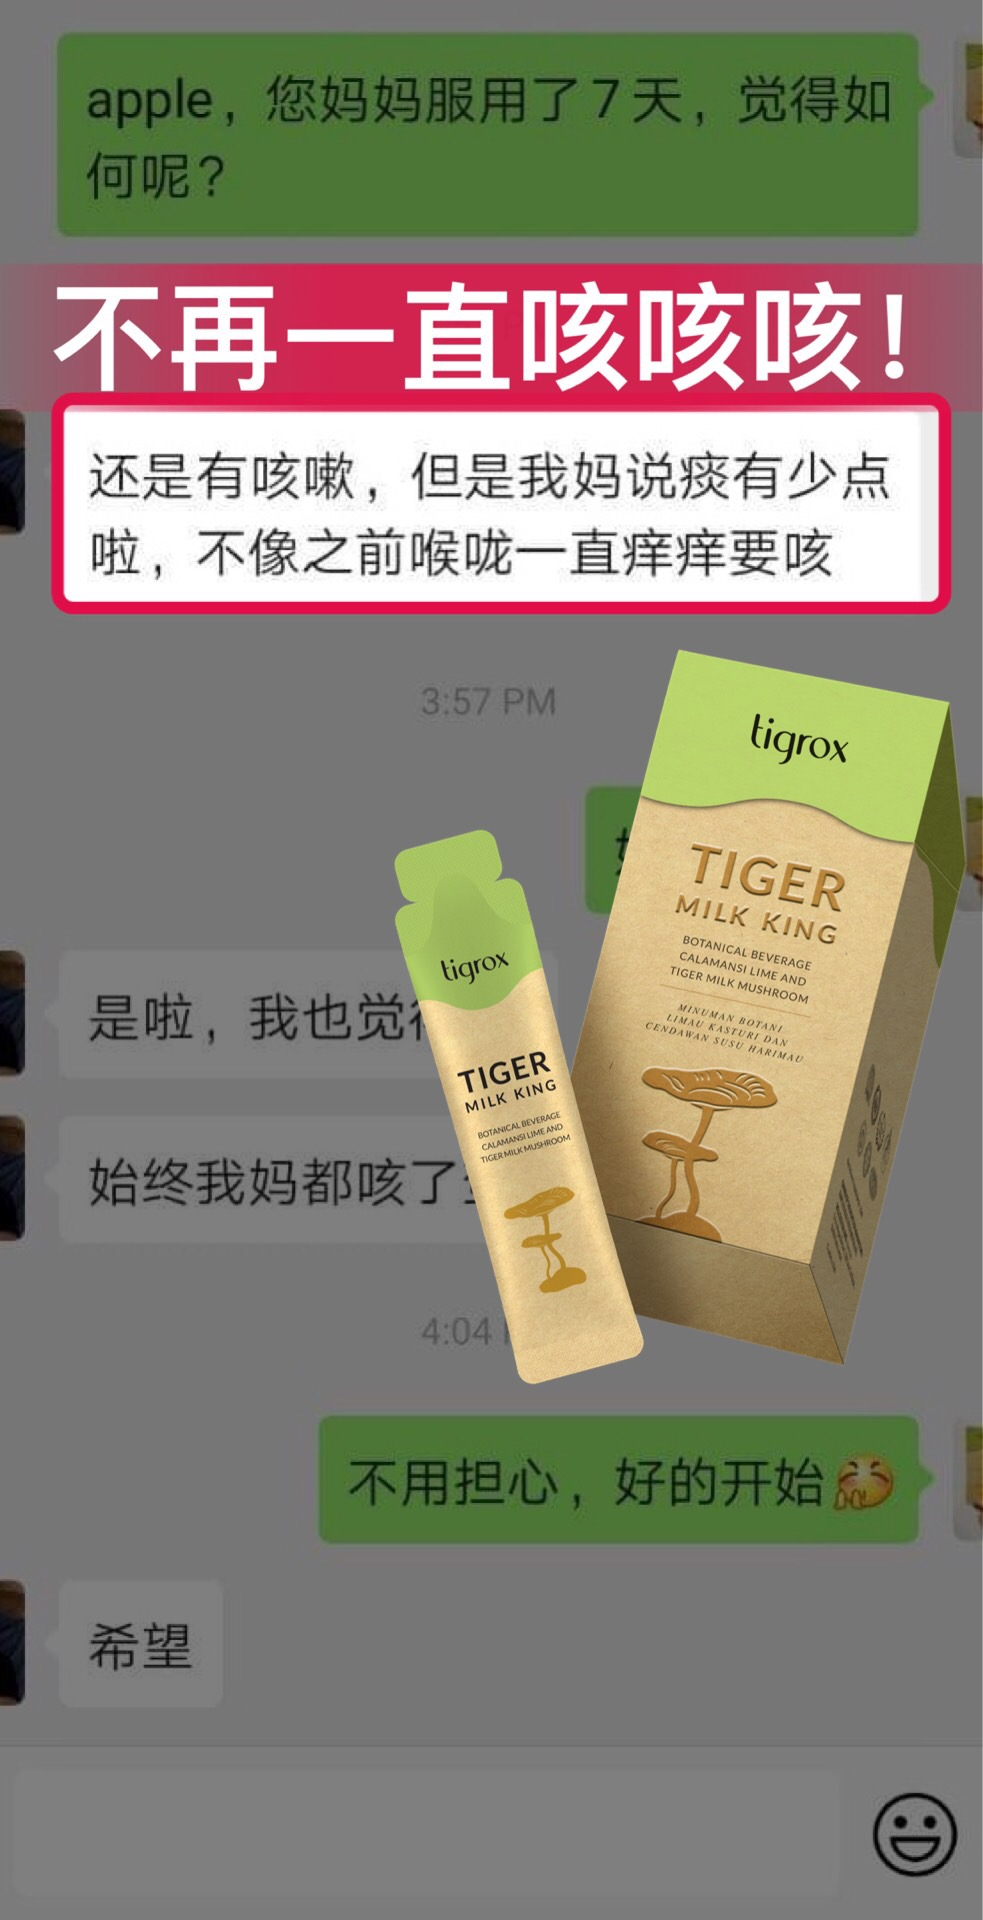 Wellous Tigrox Tiger Milk King Review Testimonial MyVpsGroup-10